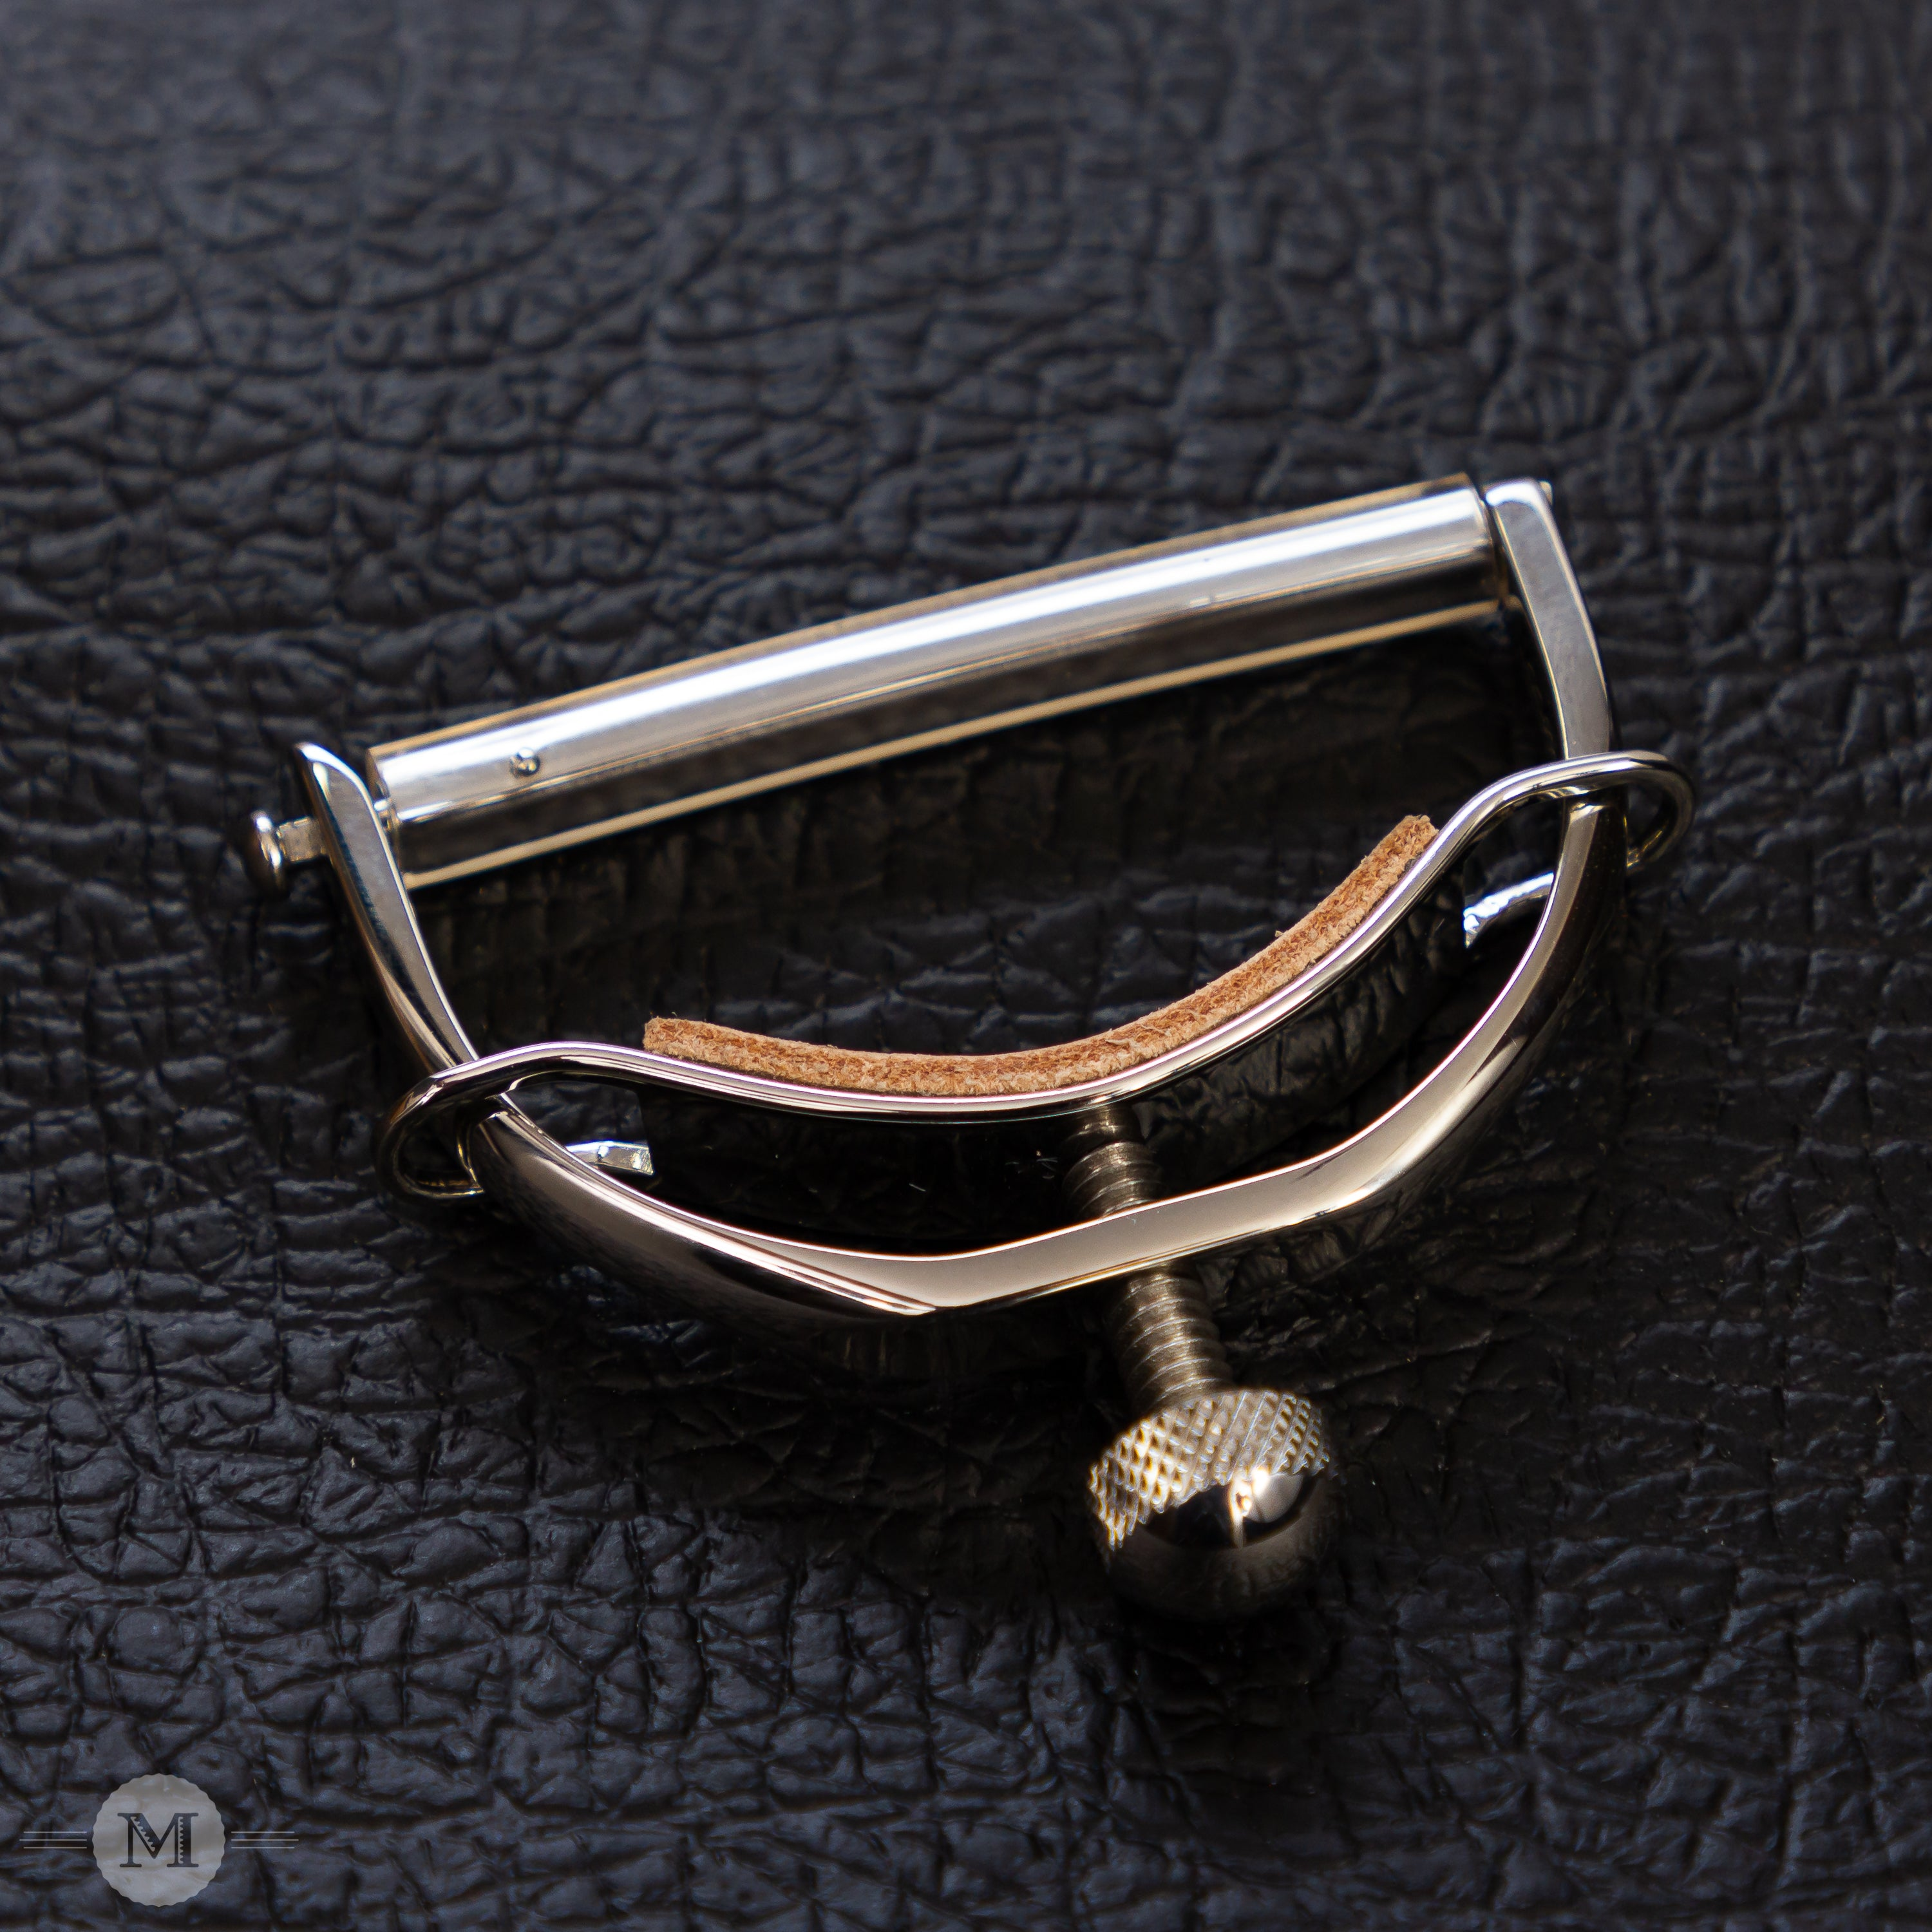 Elliott Capos - 1 3/4 Elliott Push Button Guitar Capo